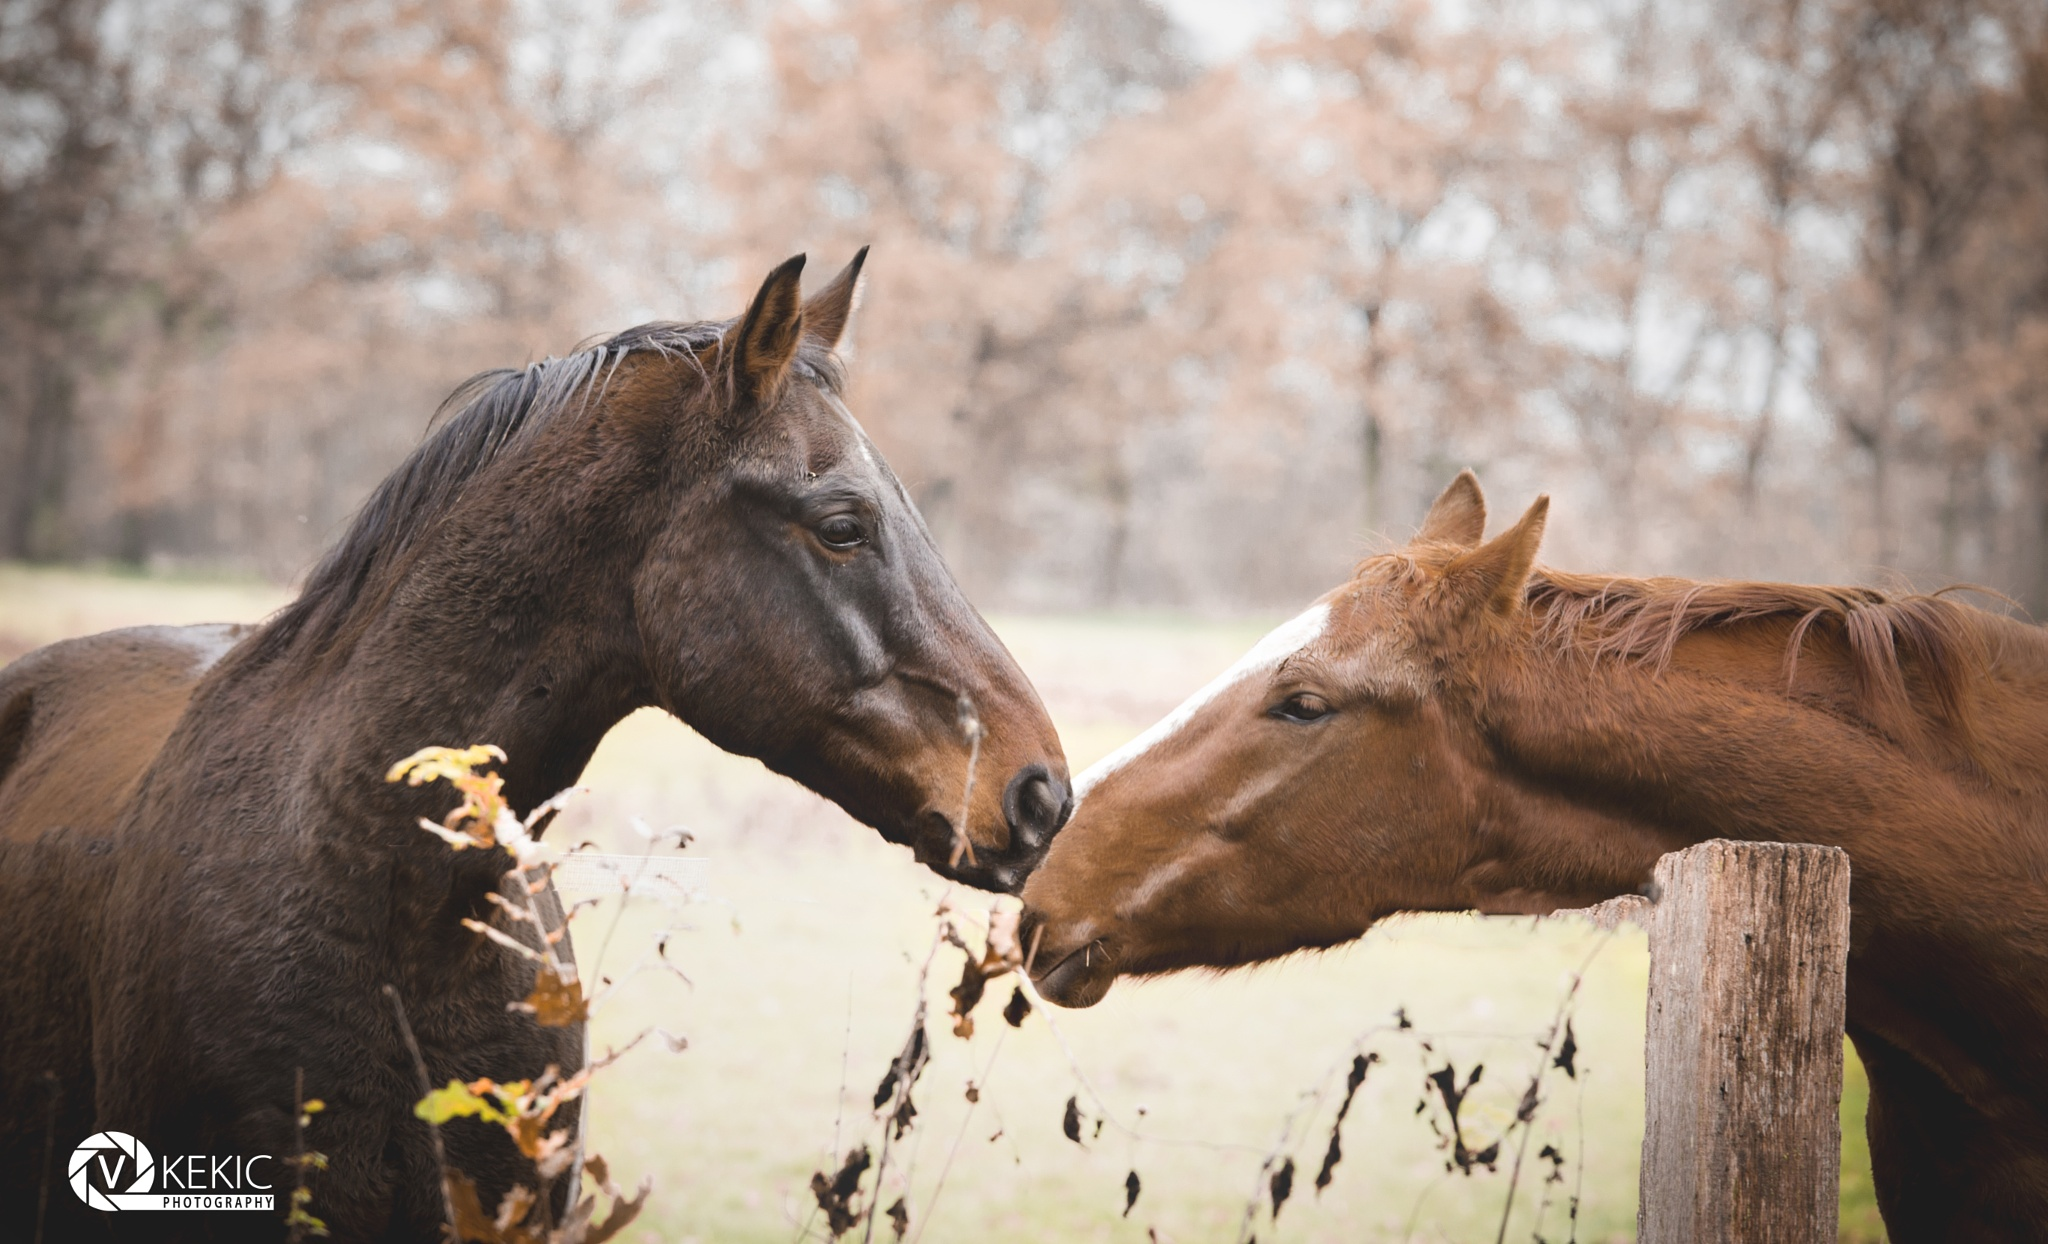 Horse Love... by v_kekic